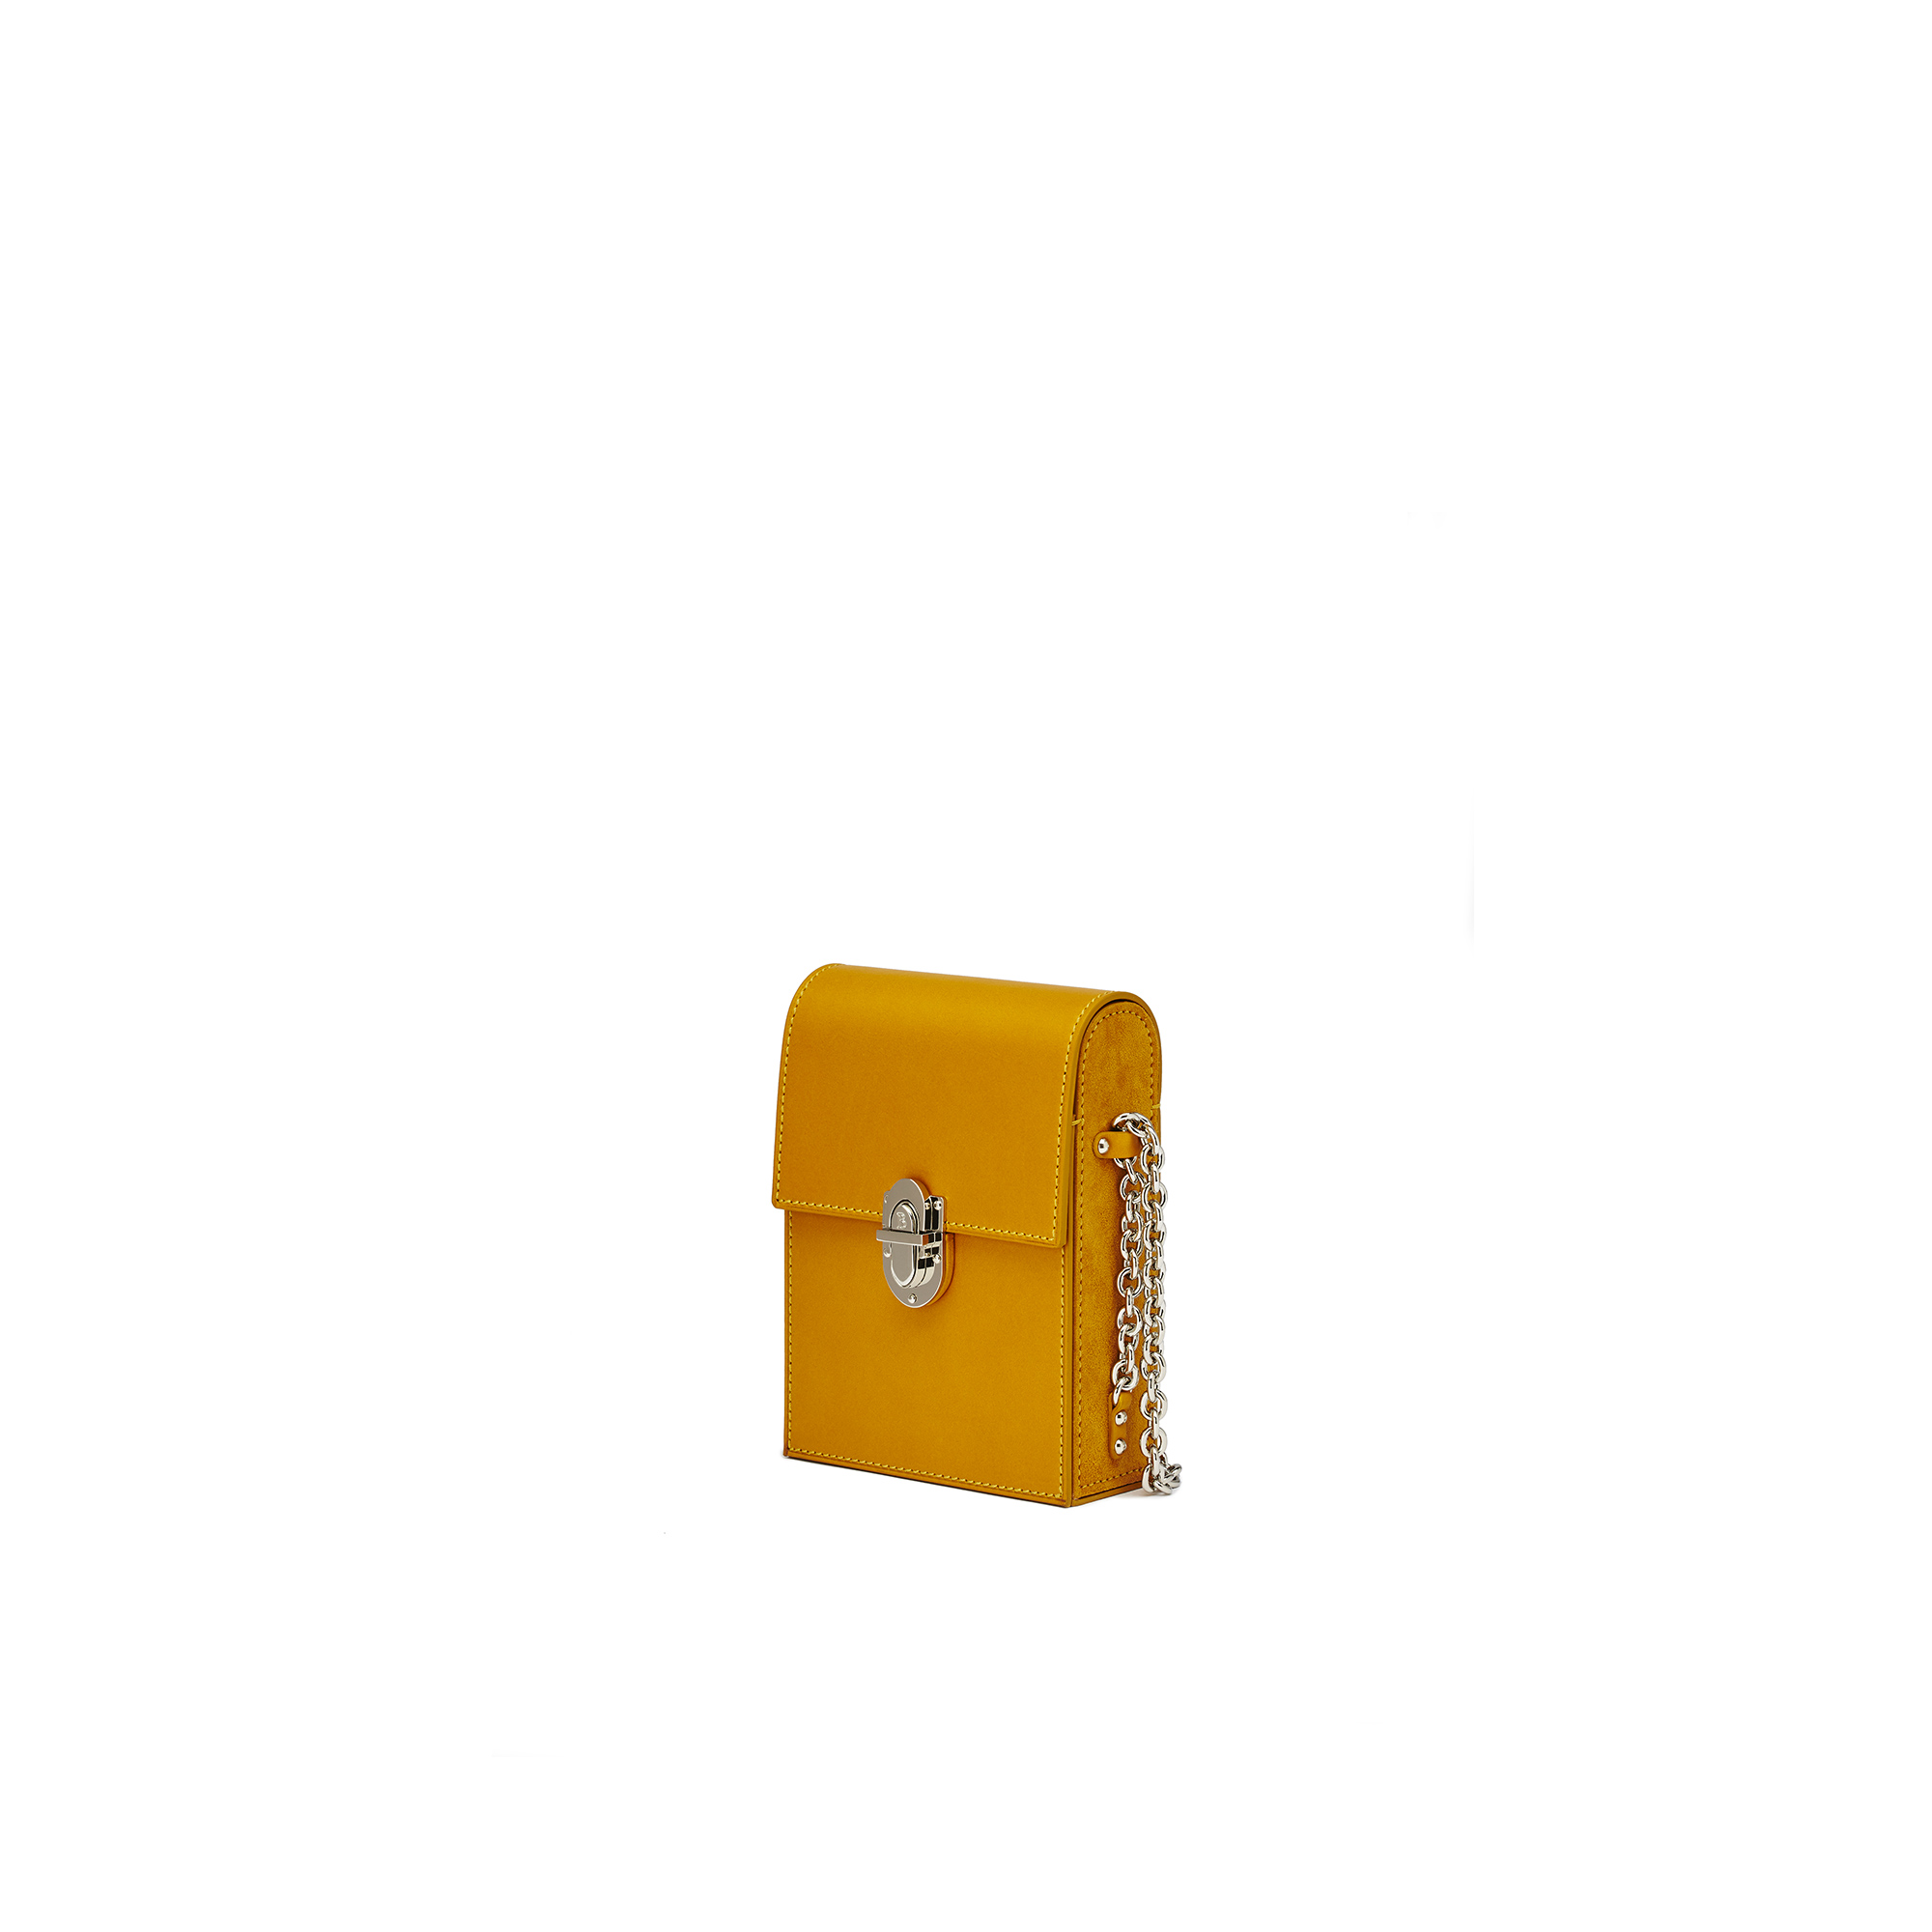 Mini-Gigi-mustard-french-calf-bag-Bertoni-1949_01